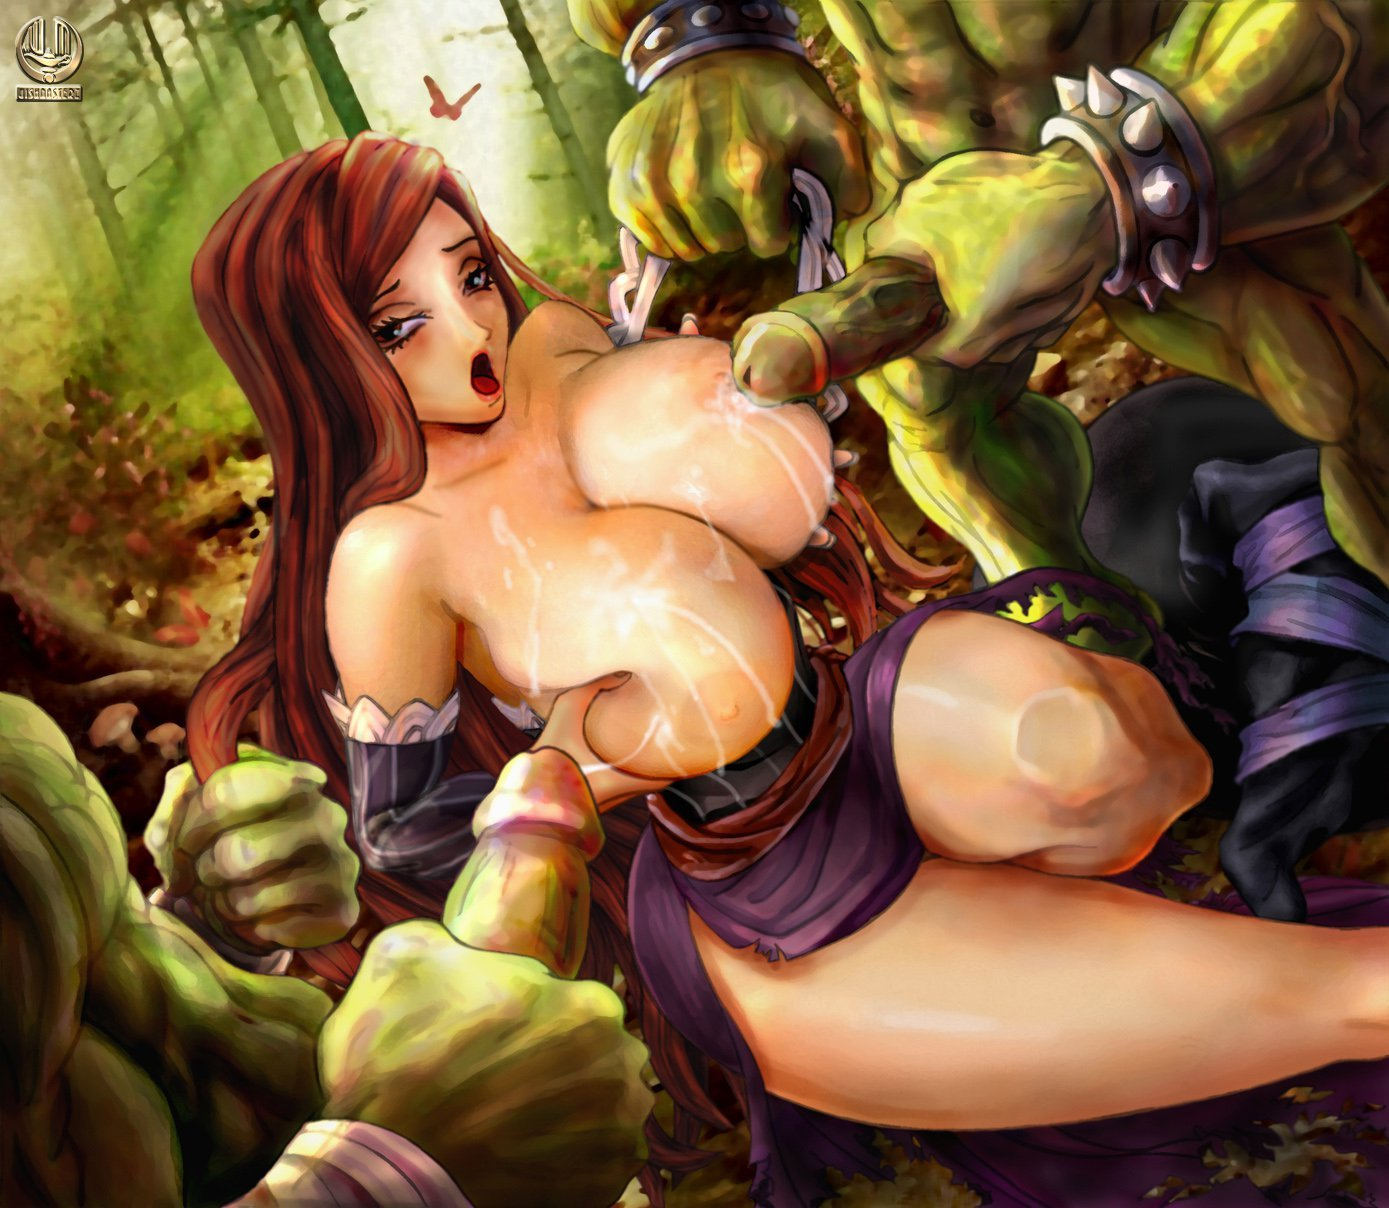 Sorceress sex exposed images